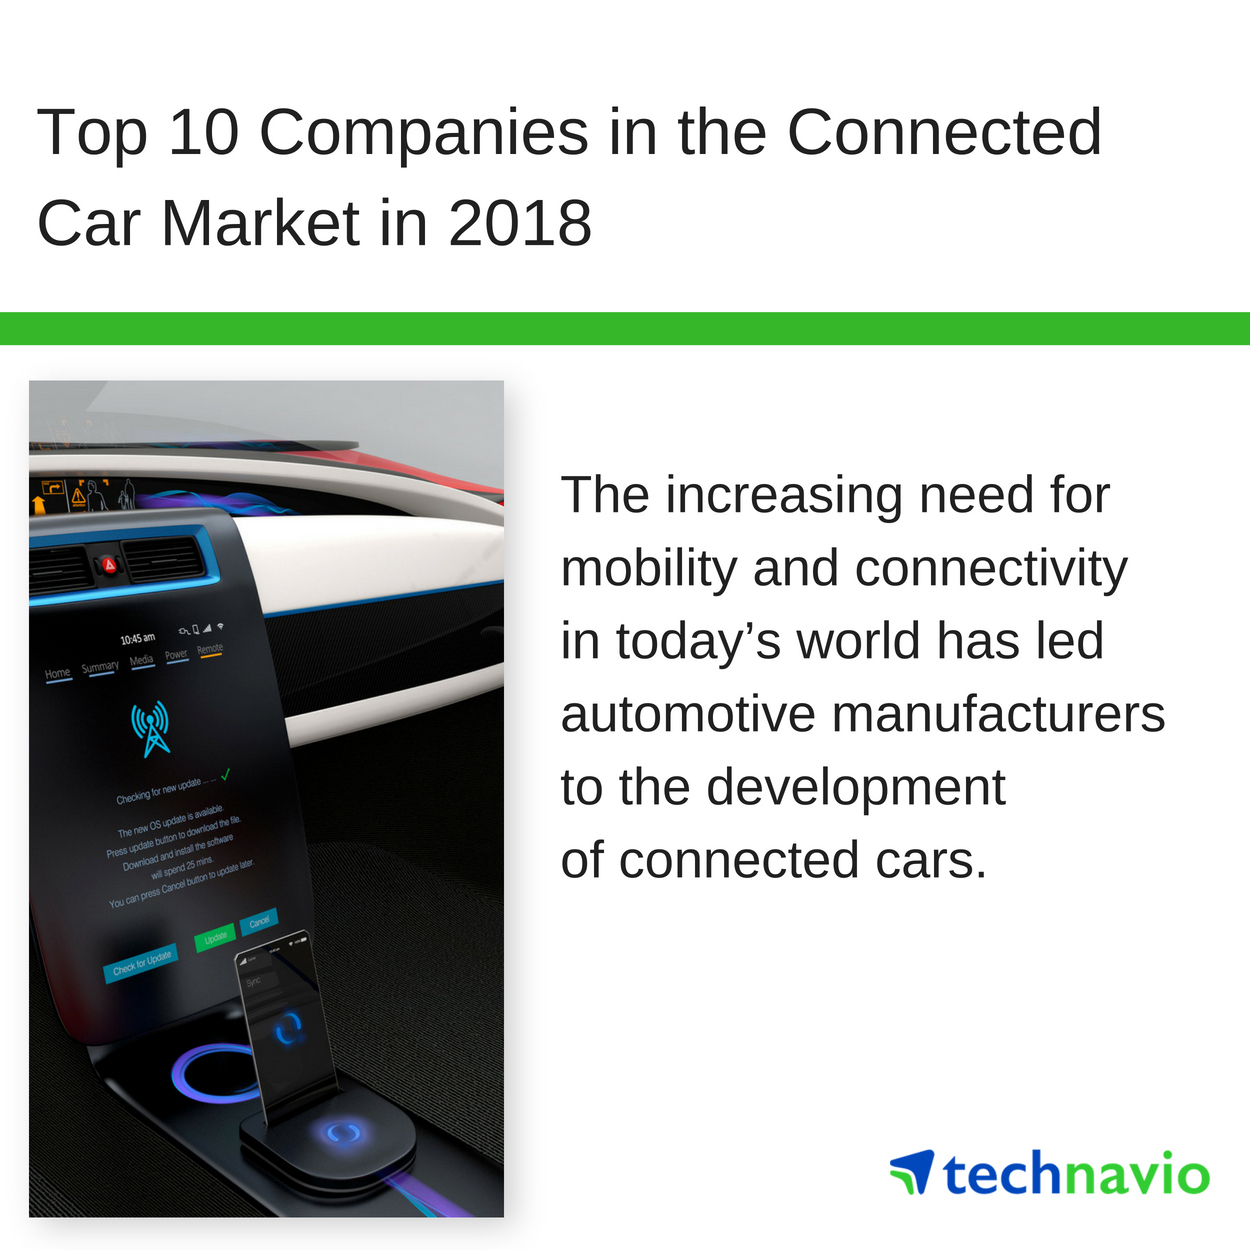 Top 10 Connected Car Companies Leading the Global Connected